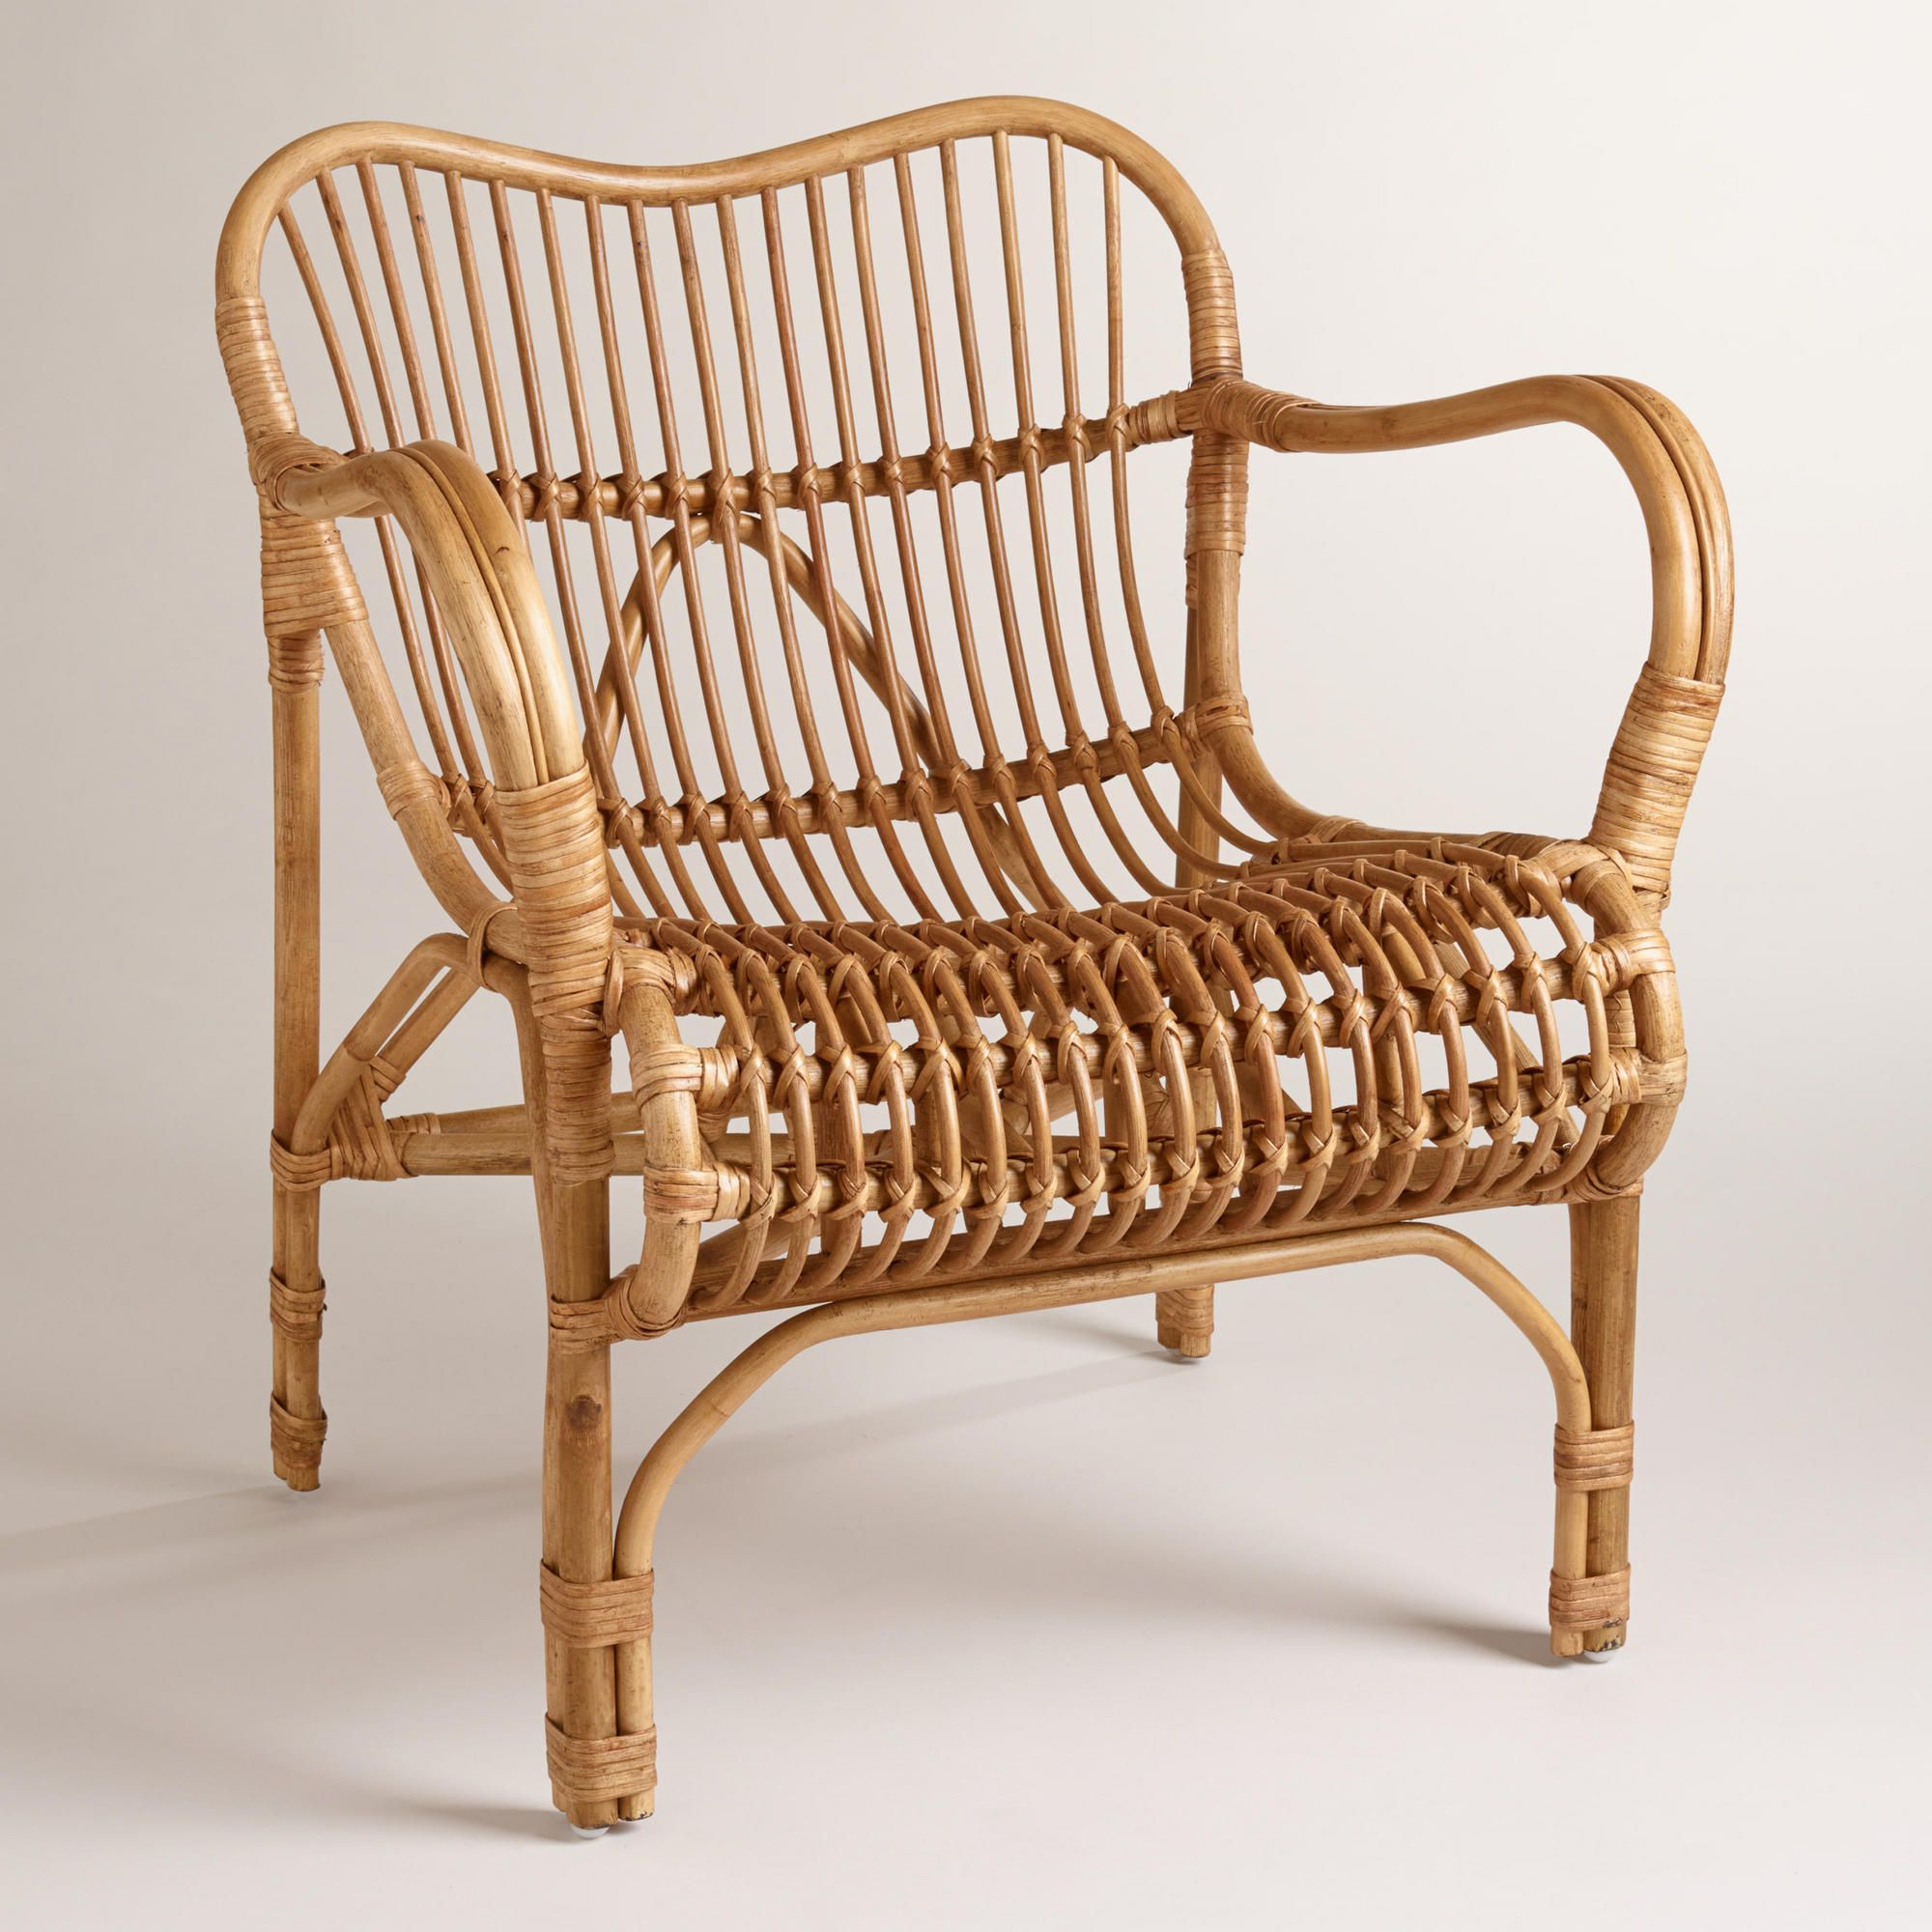 Rattan Cole Chair World market, Chairs and World